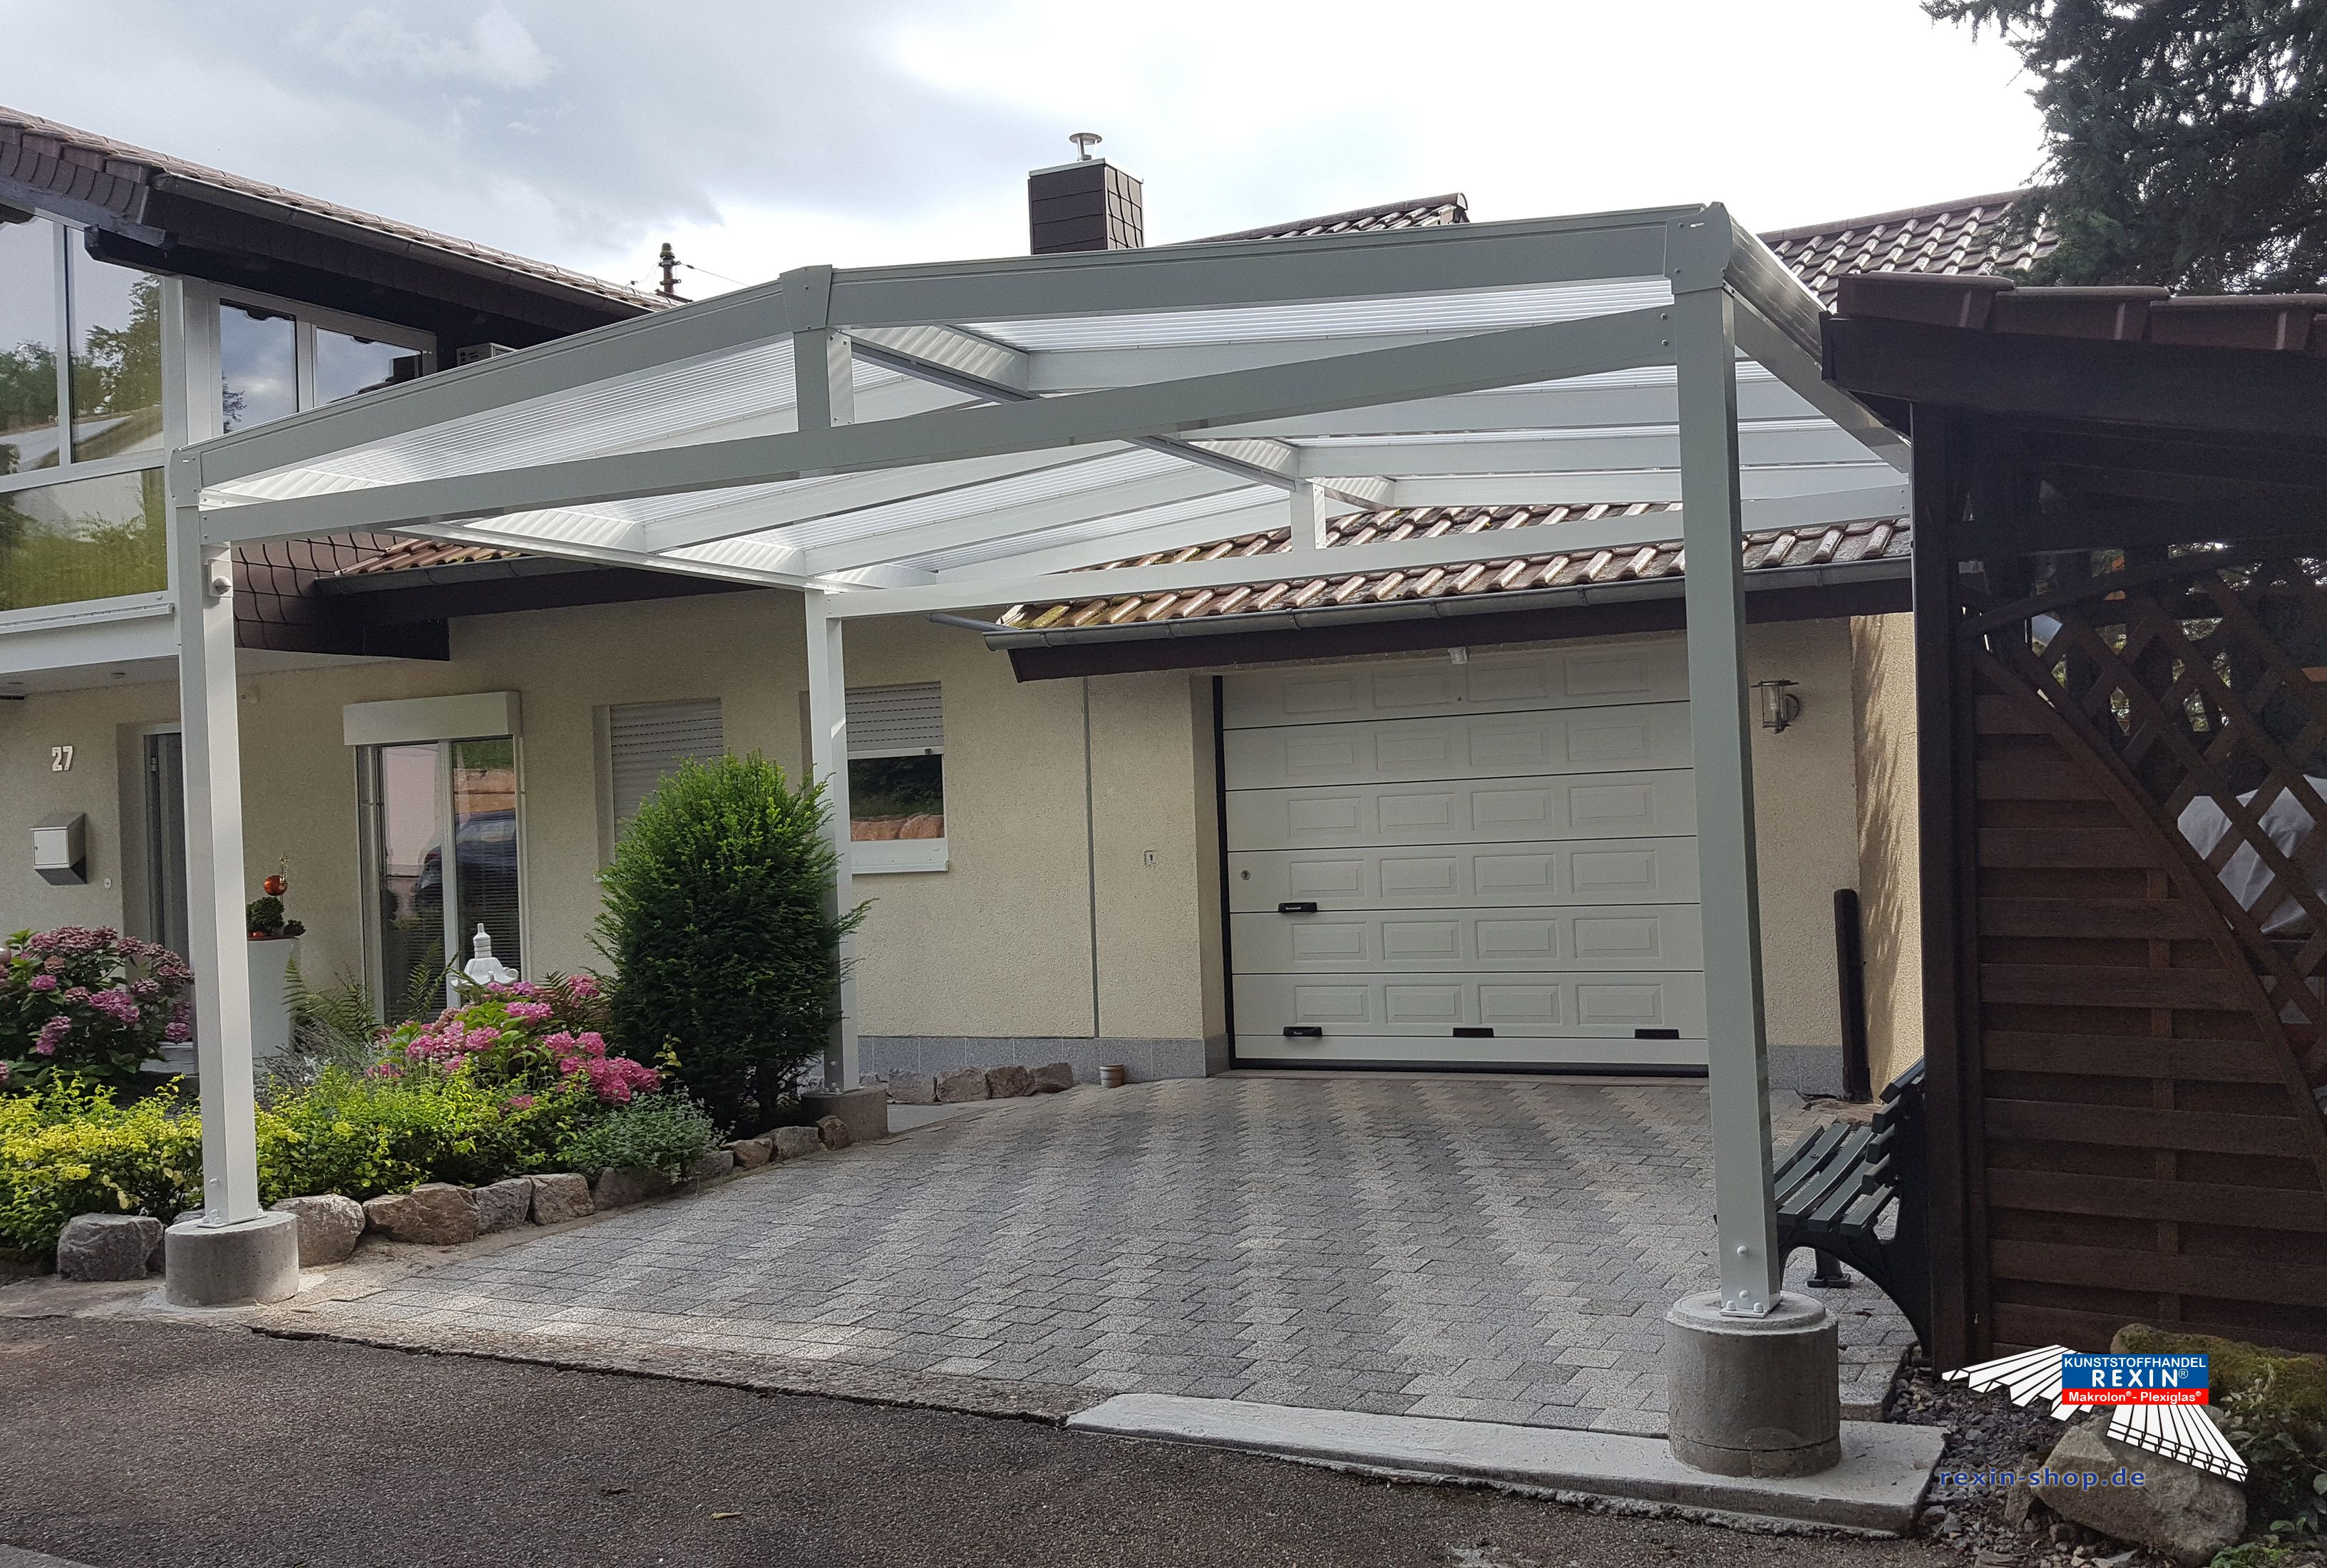 alu carport der marke rexoport 5m x 5m auf kundenwunsch angepasst auf 5m x 4m in wei bei. Black Bedroom Furniture Sets. Home Design Ideas